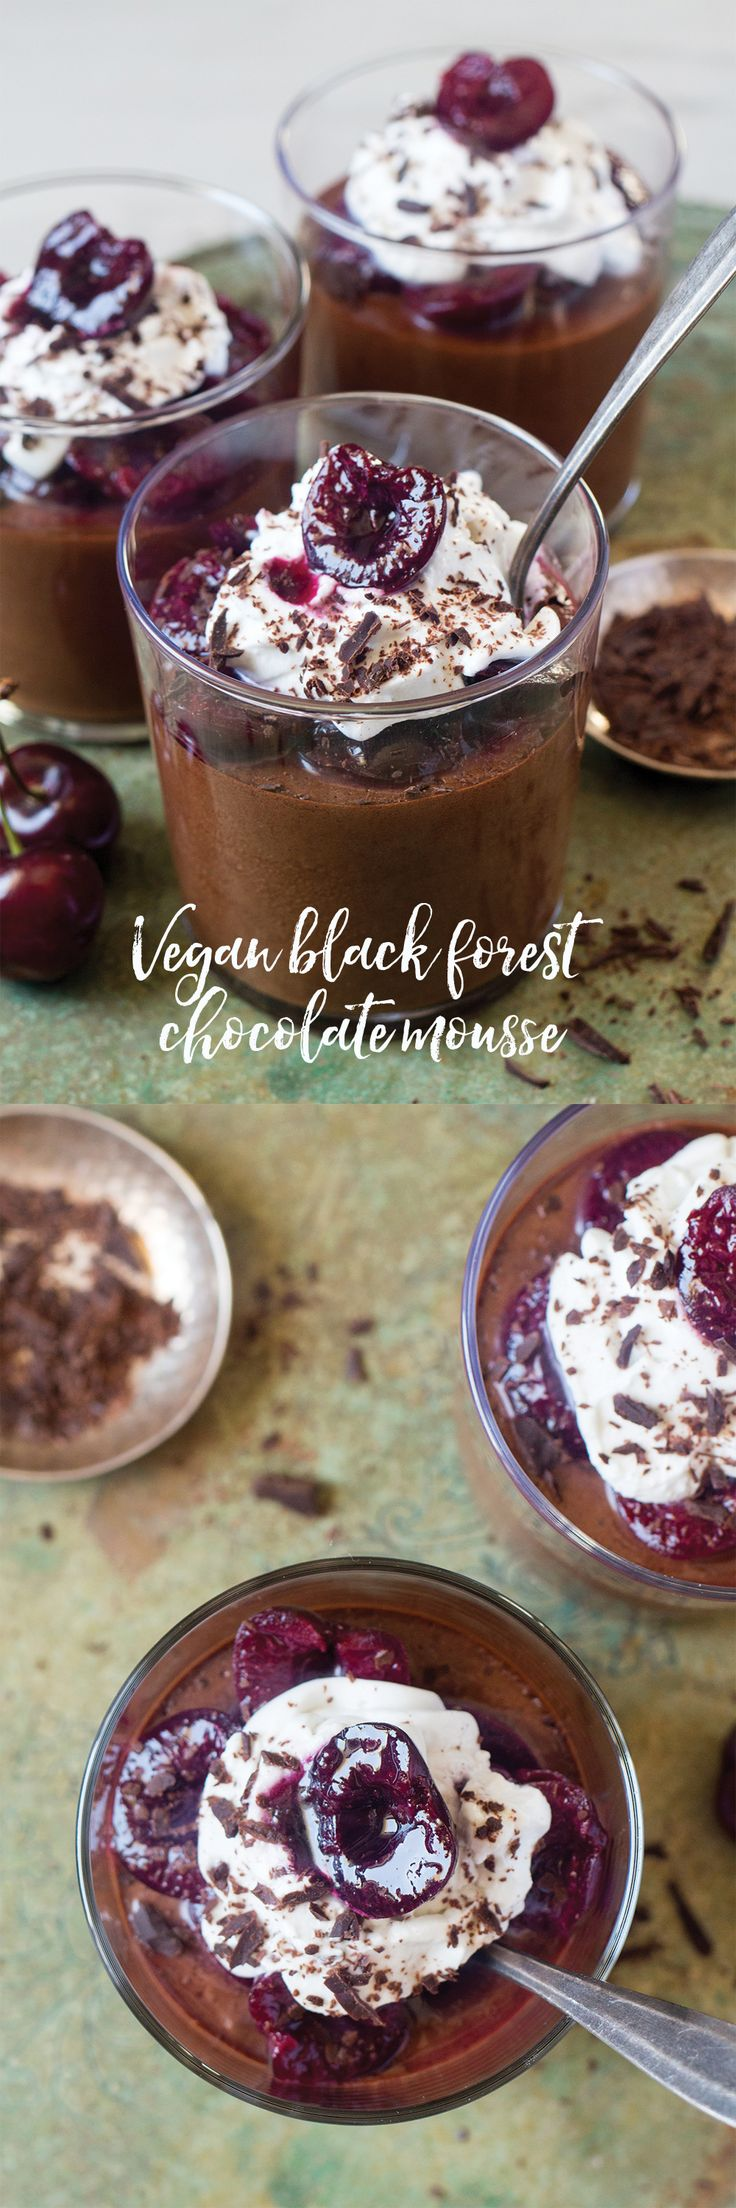 Vegan black forest chocolate mousse                                                                                                                                                      More